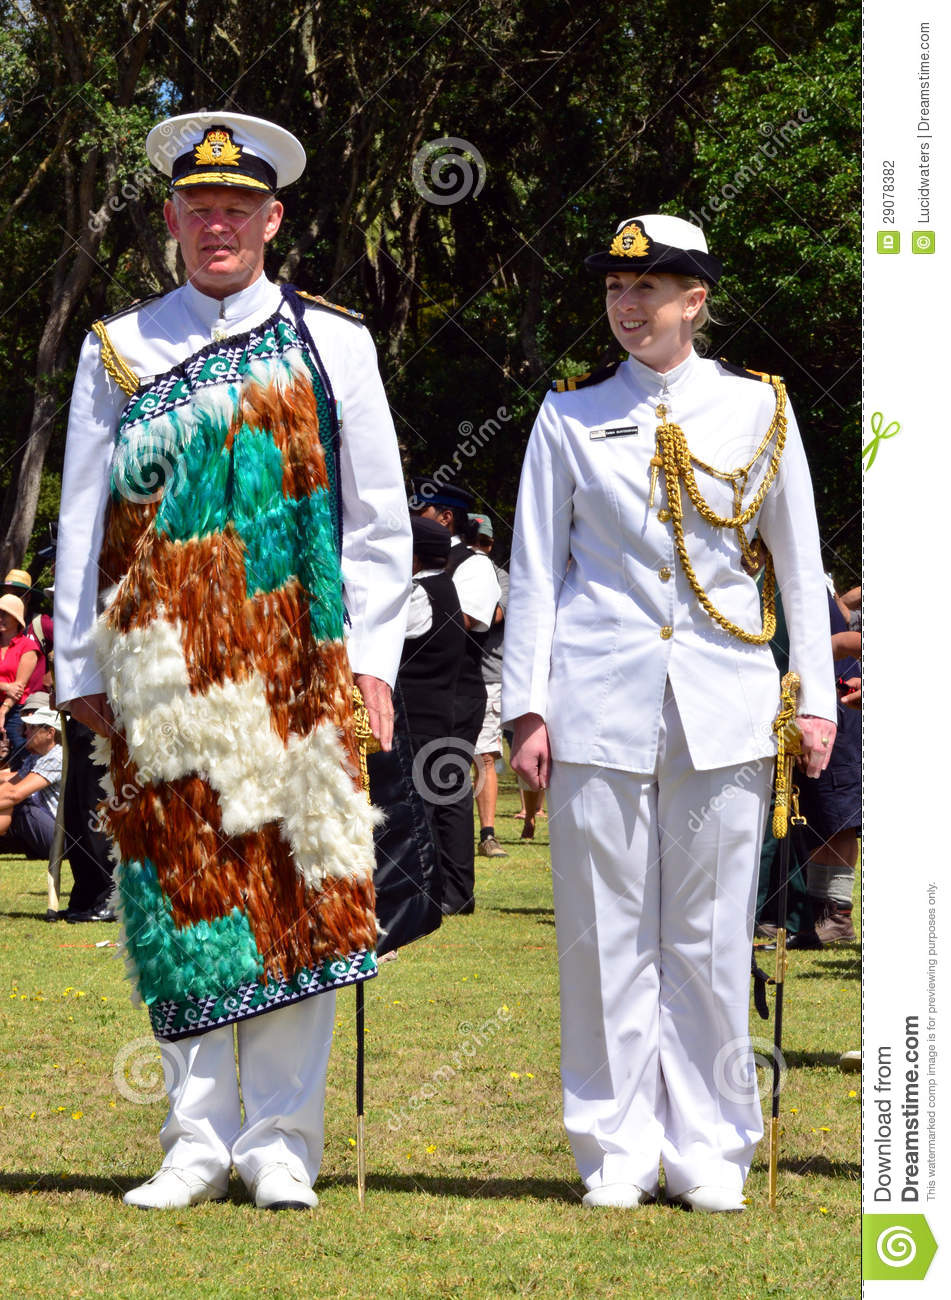 Waitangi Day and Festival - New Zealand Public Holiday 2013